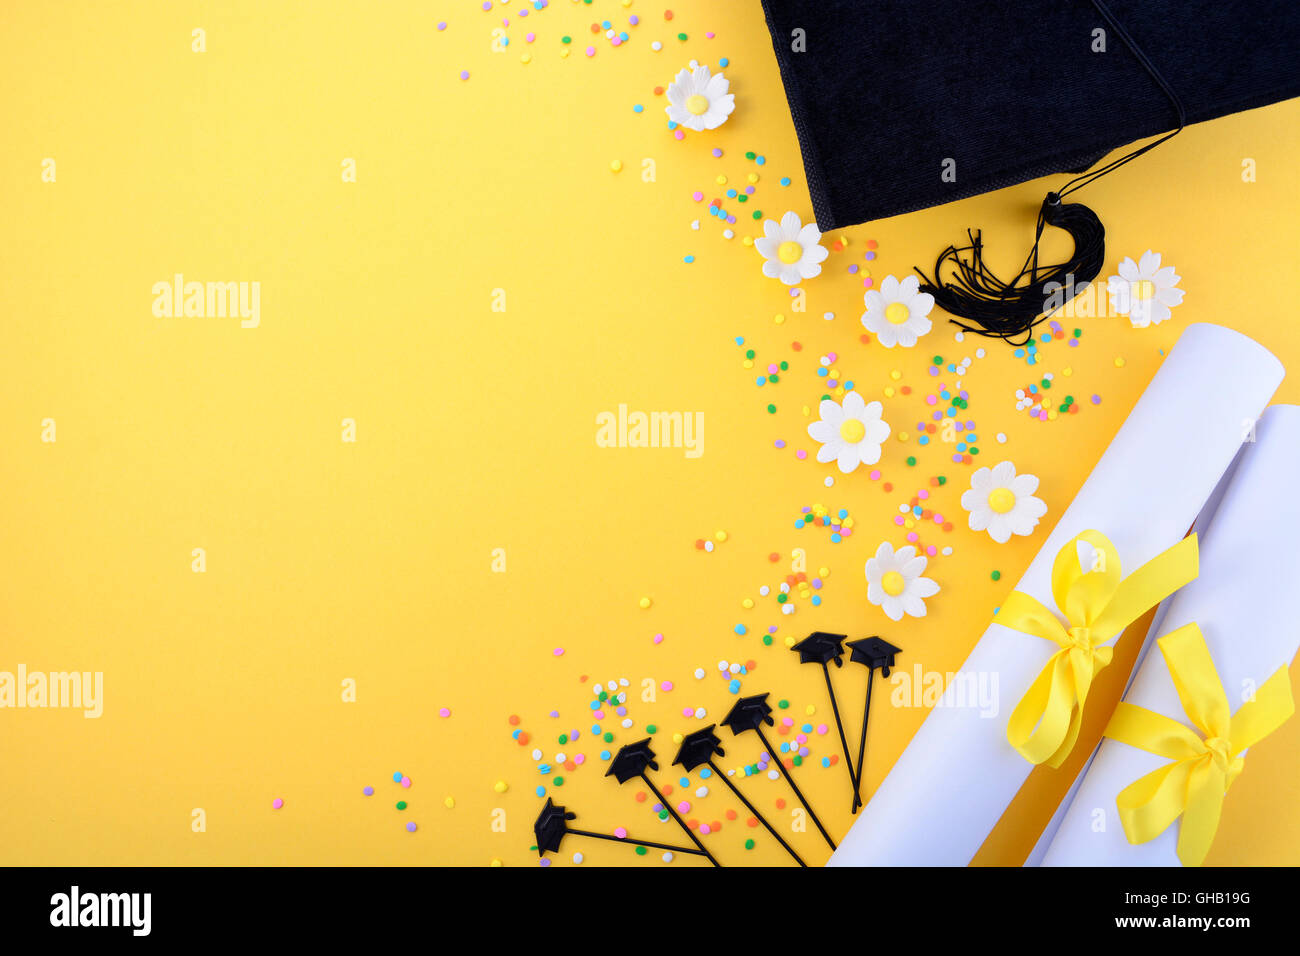 Yellow Black And White Theme Graduation Background With ...